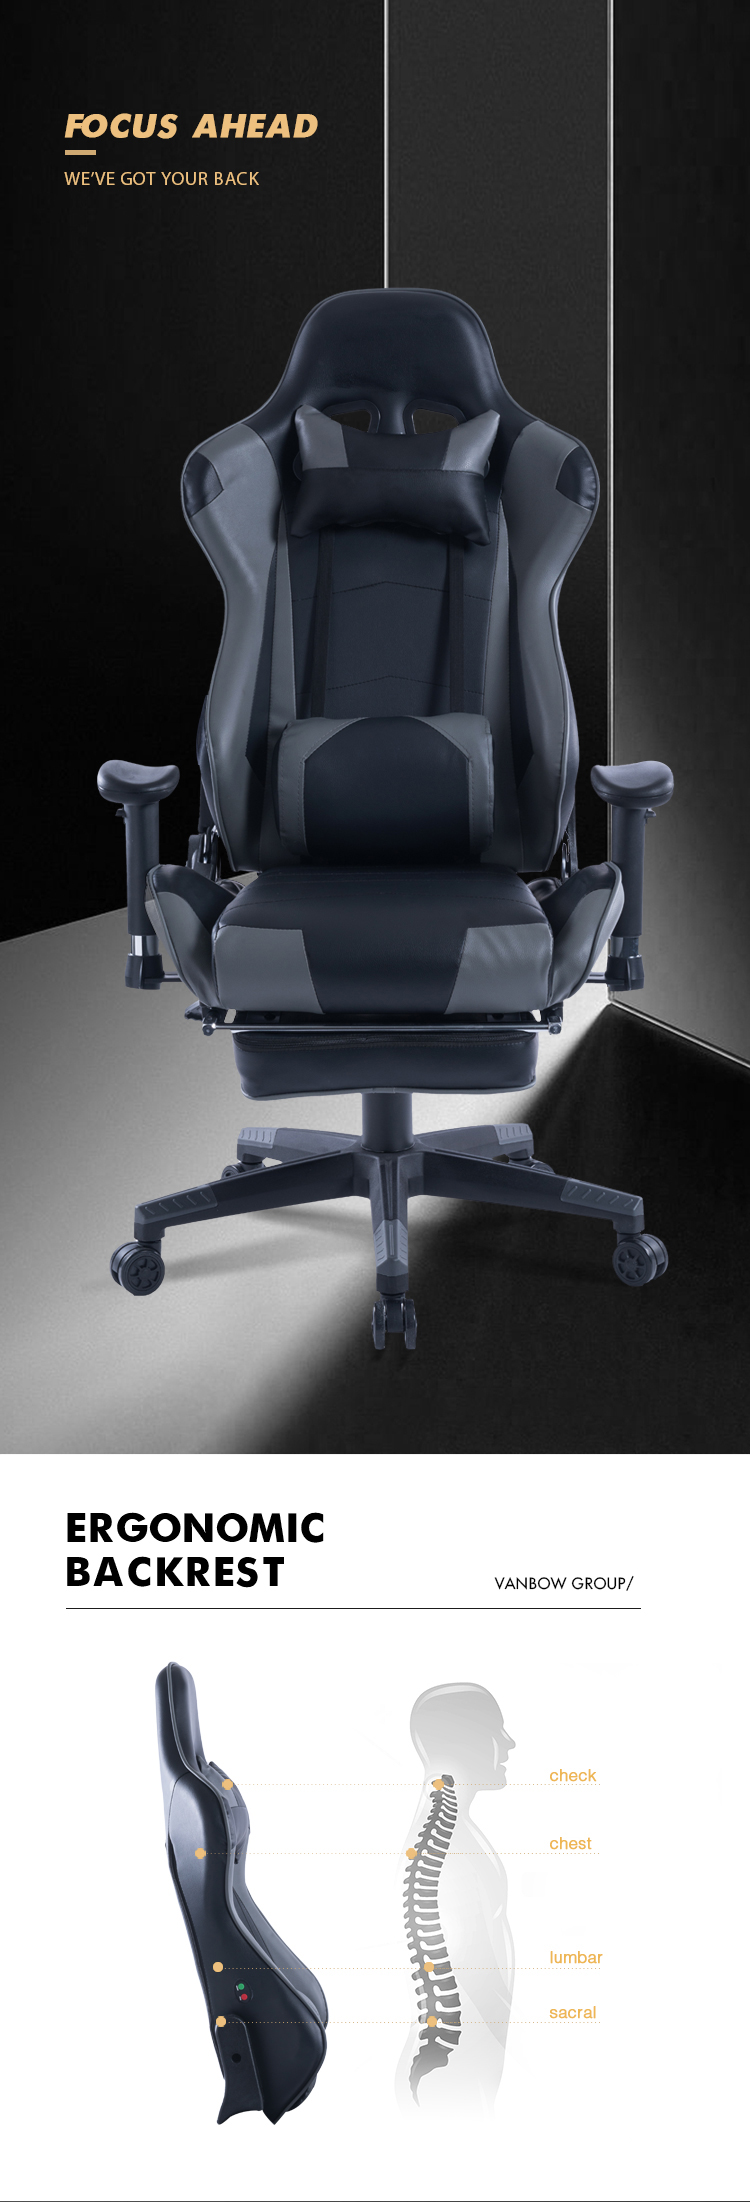 8204 Grey PVC Leather Racing Style Office Gaming Chair USA Stock Silla Gamer